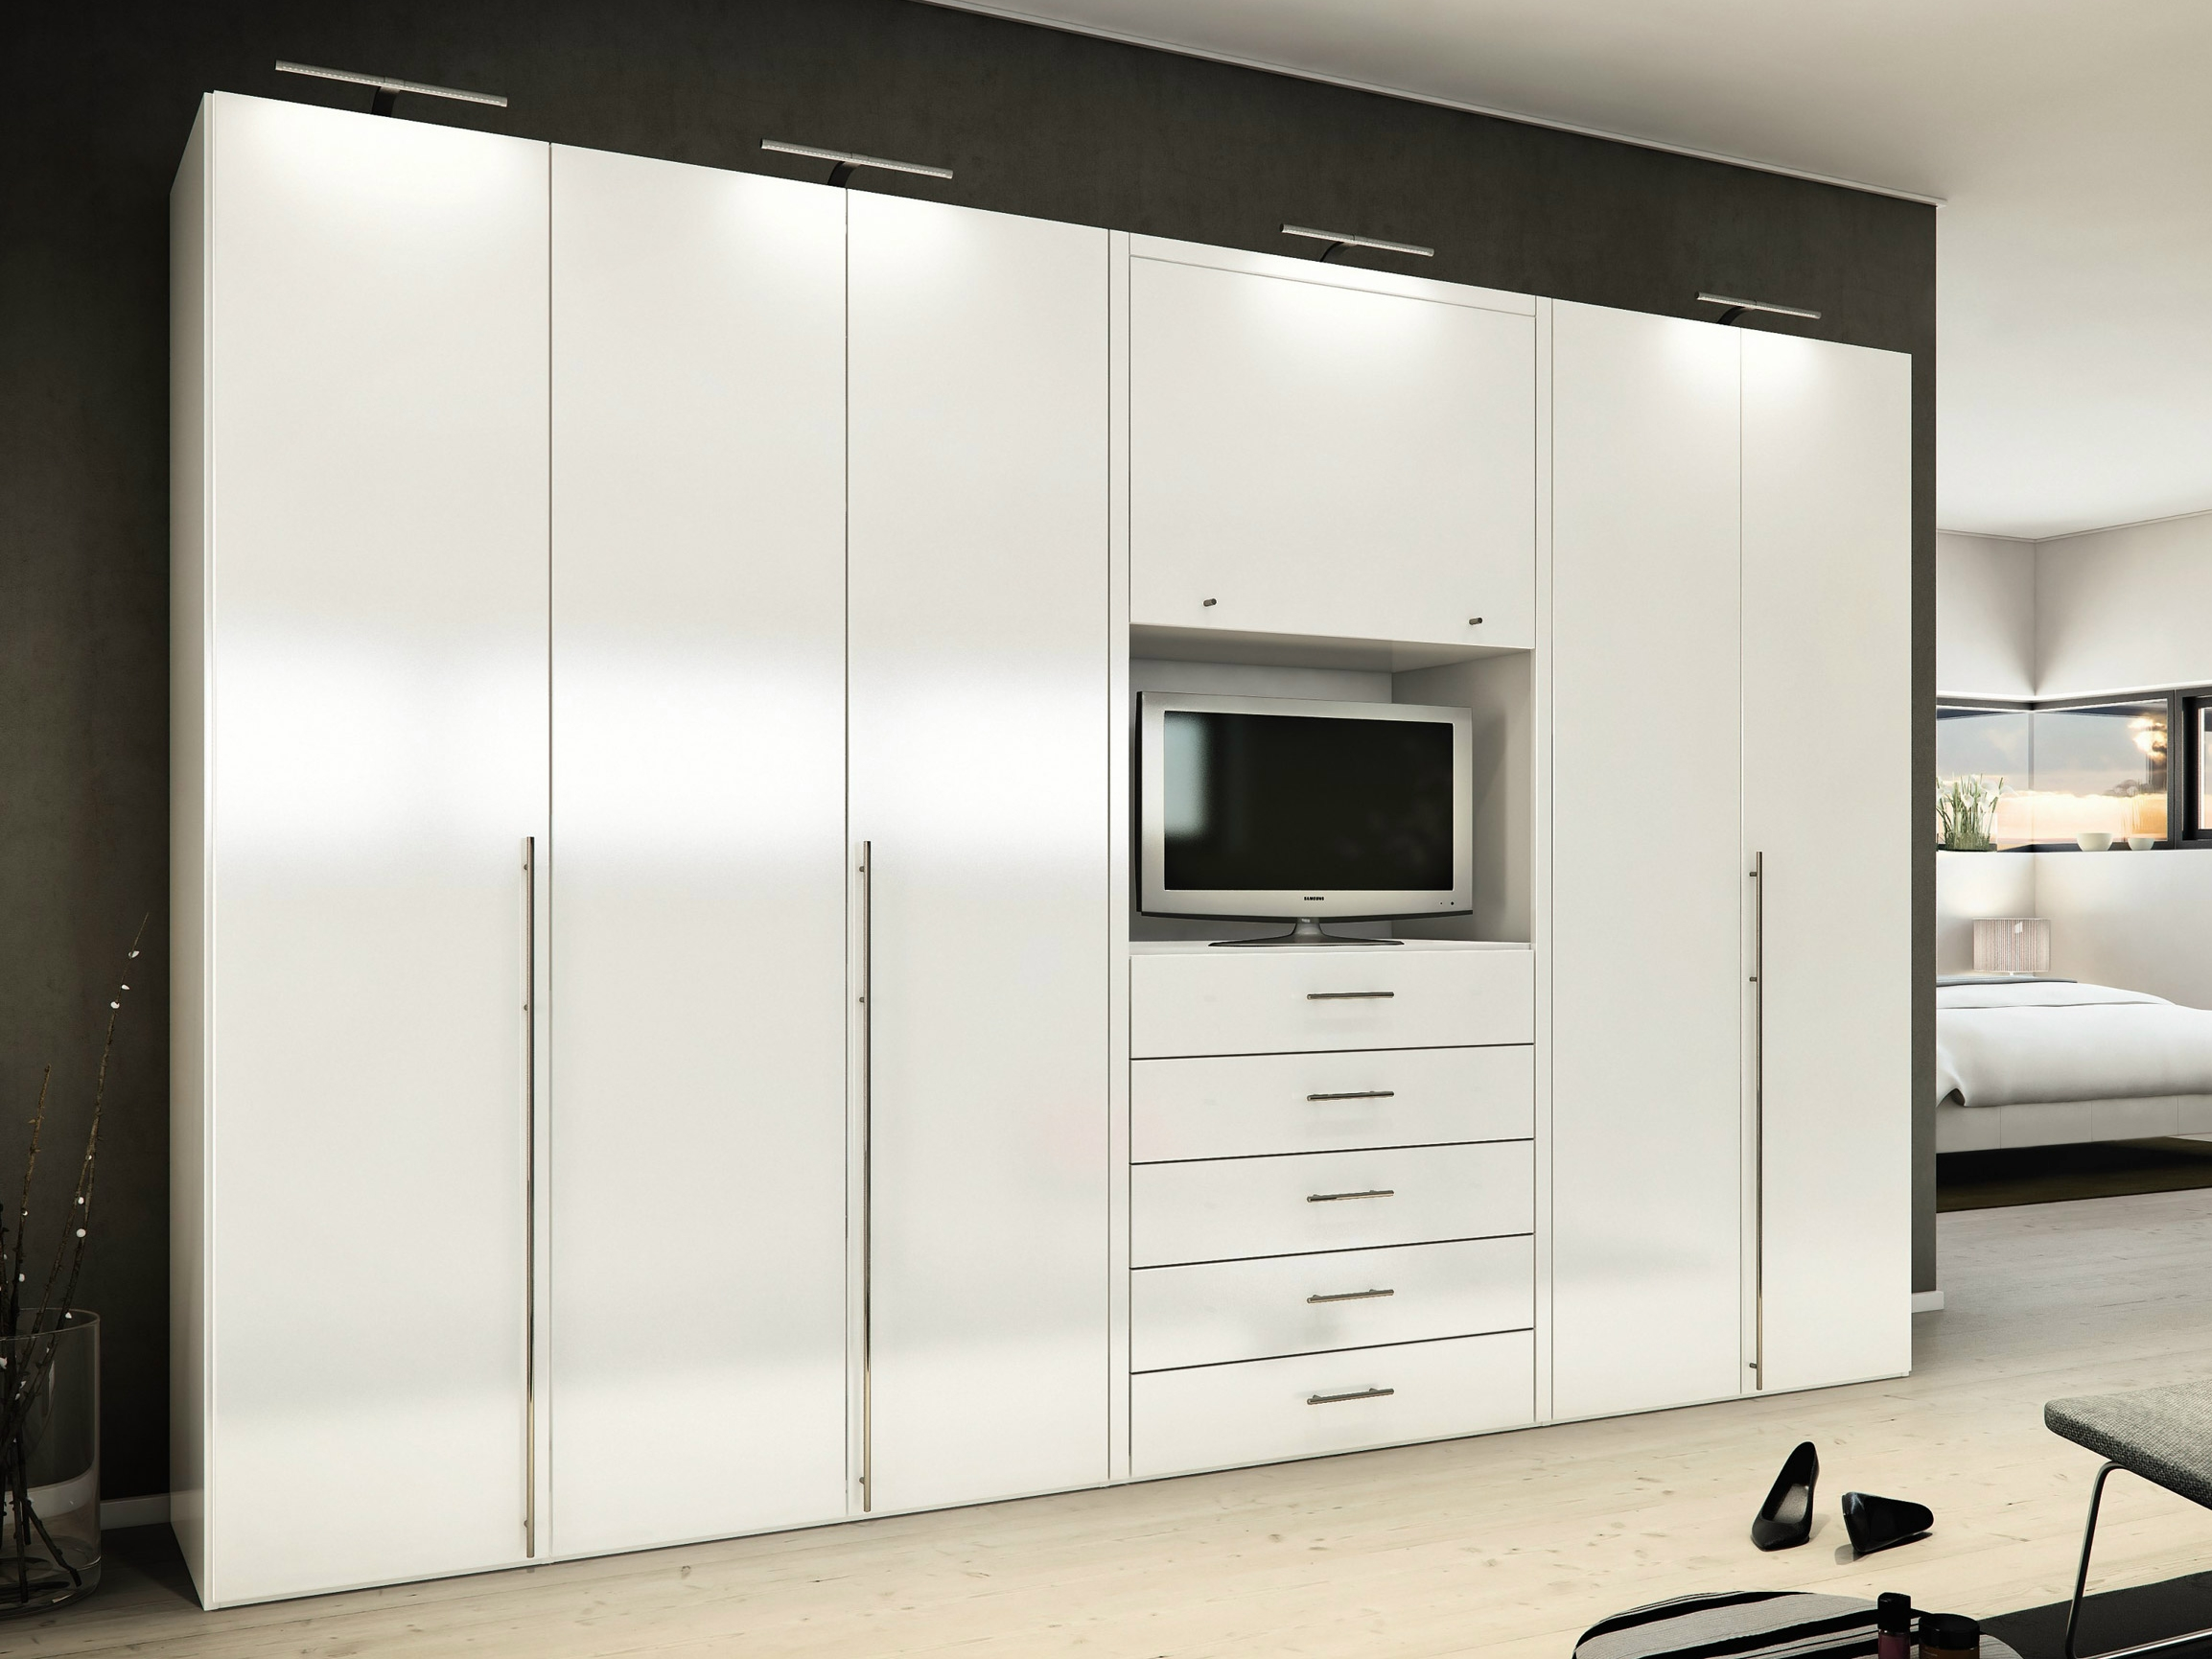 Bedroom Ideas Furniture Mesmerizing White High Gloss Built In Intended For Wardrobe With Drawers And Shelves (View 1 of 15)